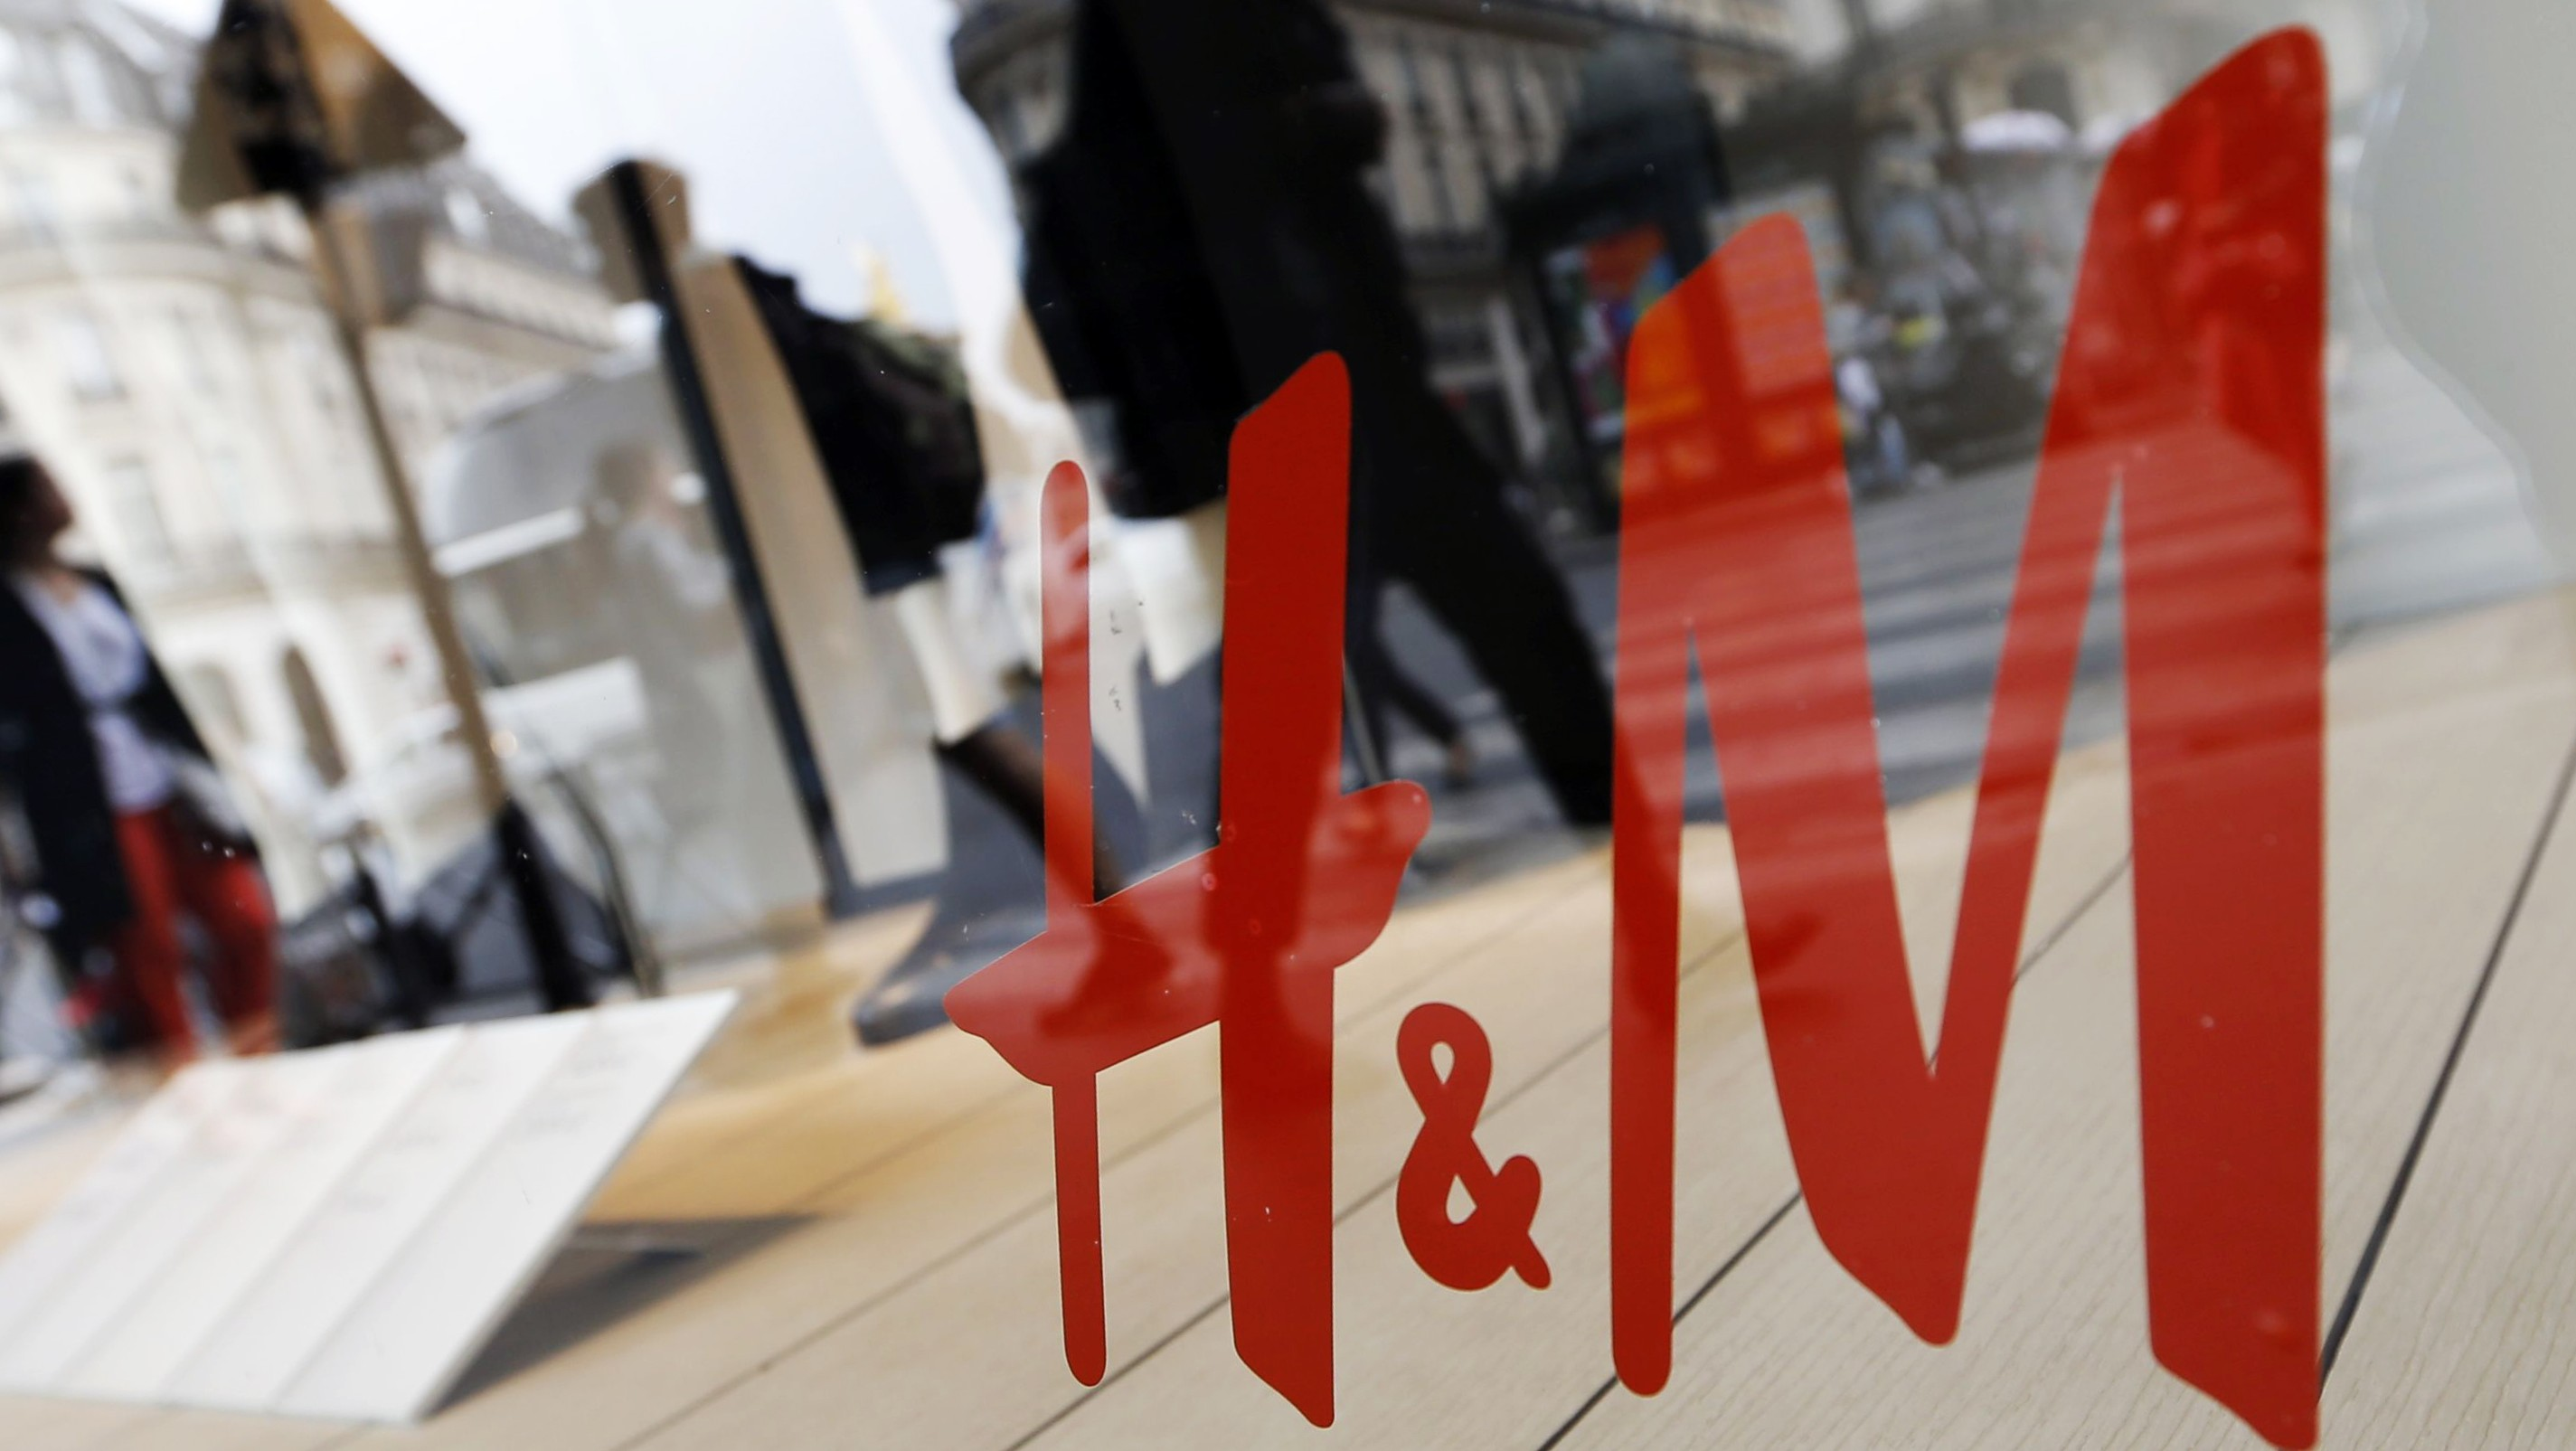 People walk past the window of a H&M store in Paris, France, August 24, 2015. Hennes & Mauritz, the world's second-biggest fashion retailer, is launching a new effort to promote recycling as it seeks to cut its environmental impact, boost its ethical credentials and address looming shortages of raw materials.    REUTERS/Regis Duvignau - RTX1QJQX